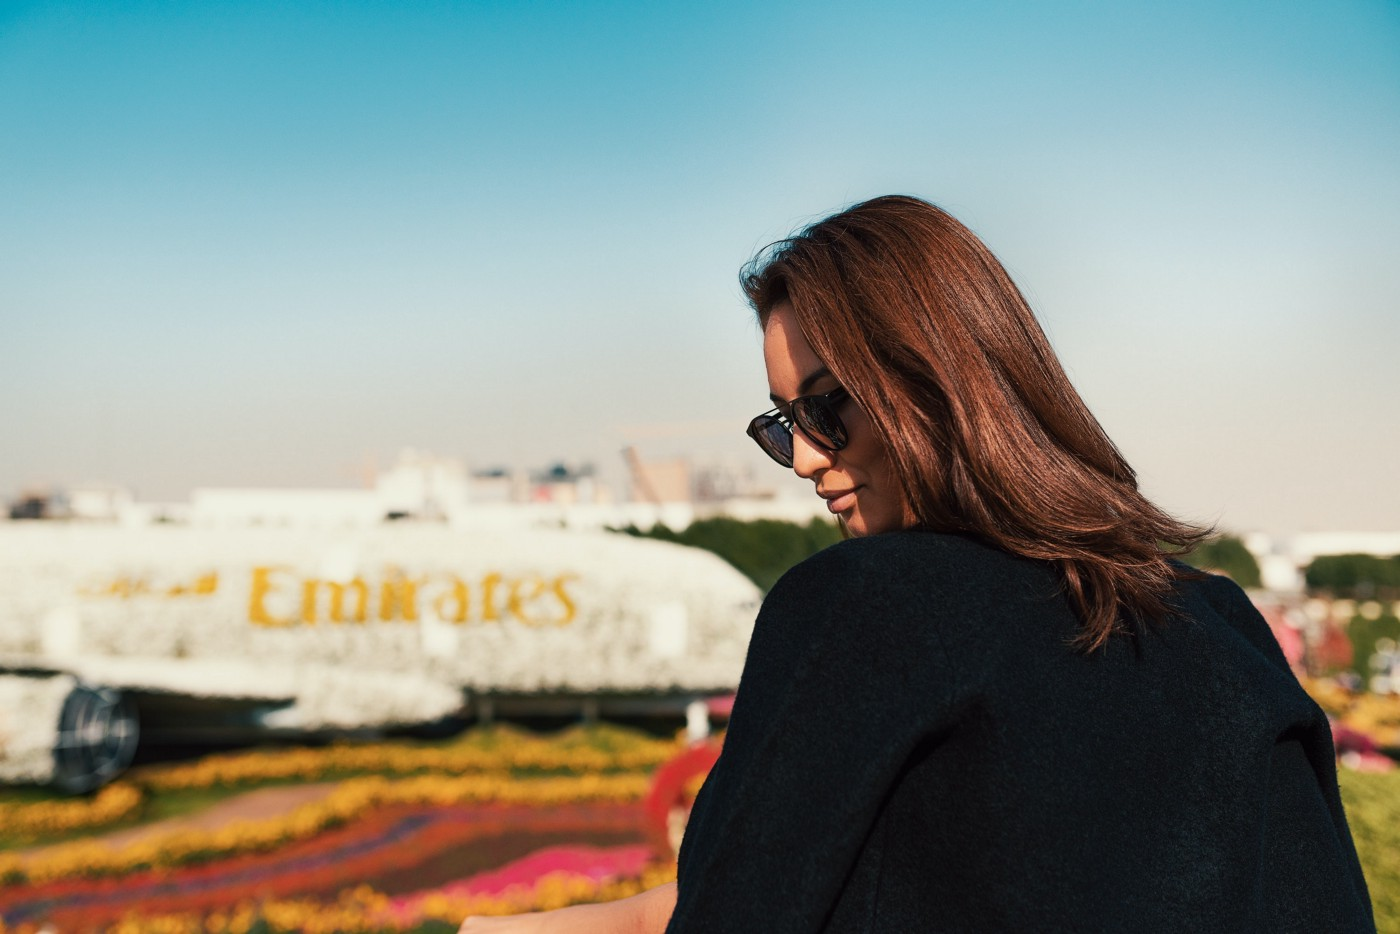 Woman in front of a floral version of the Emirates aircraft.